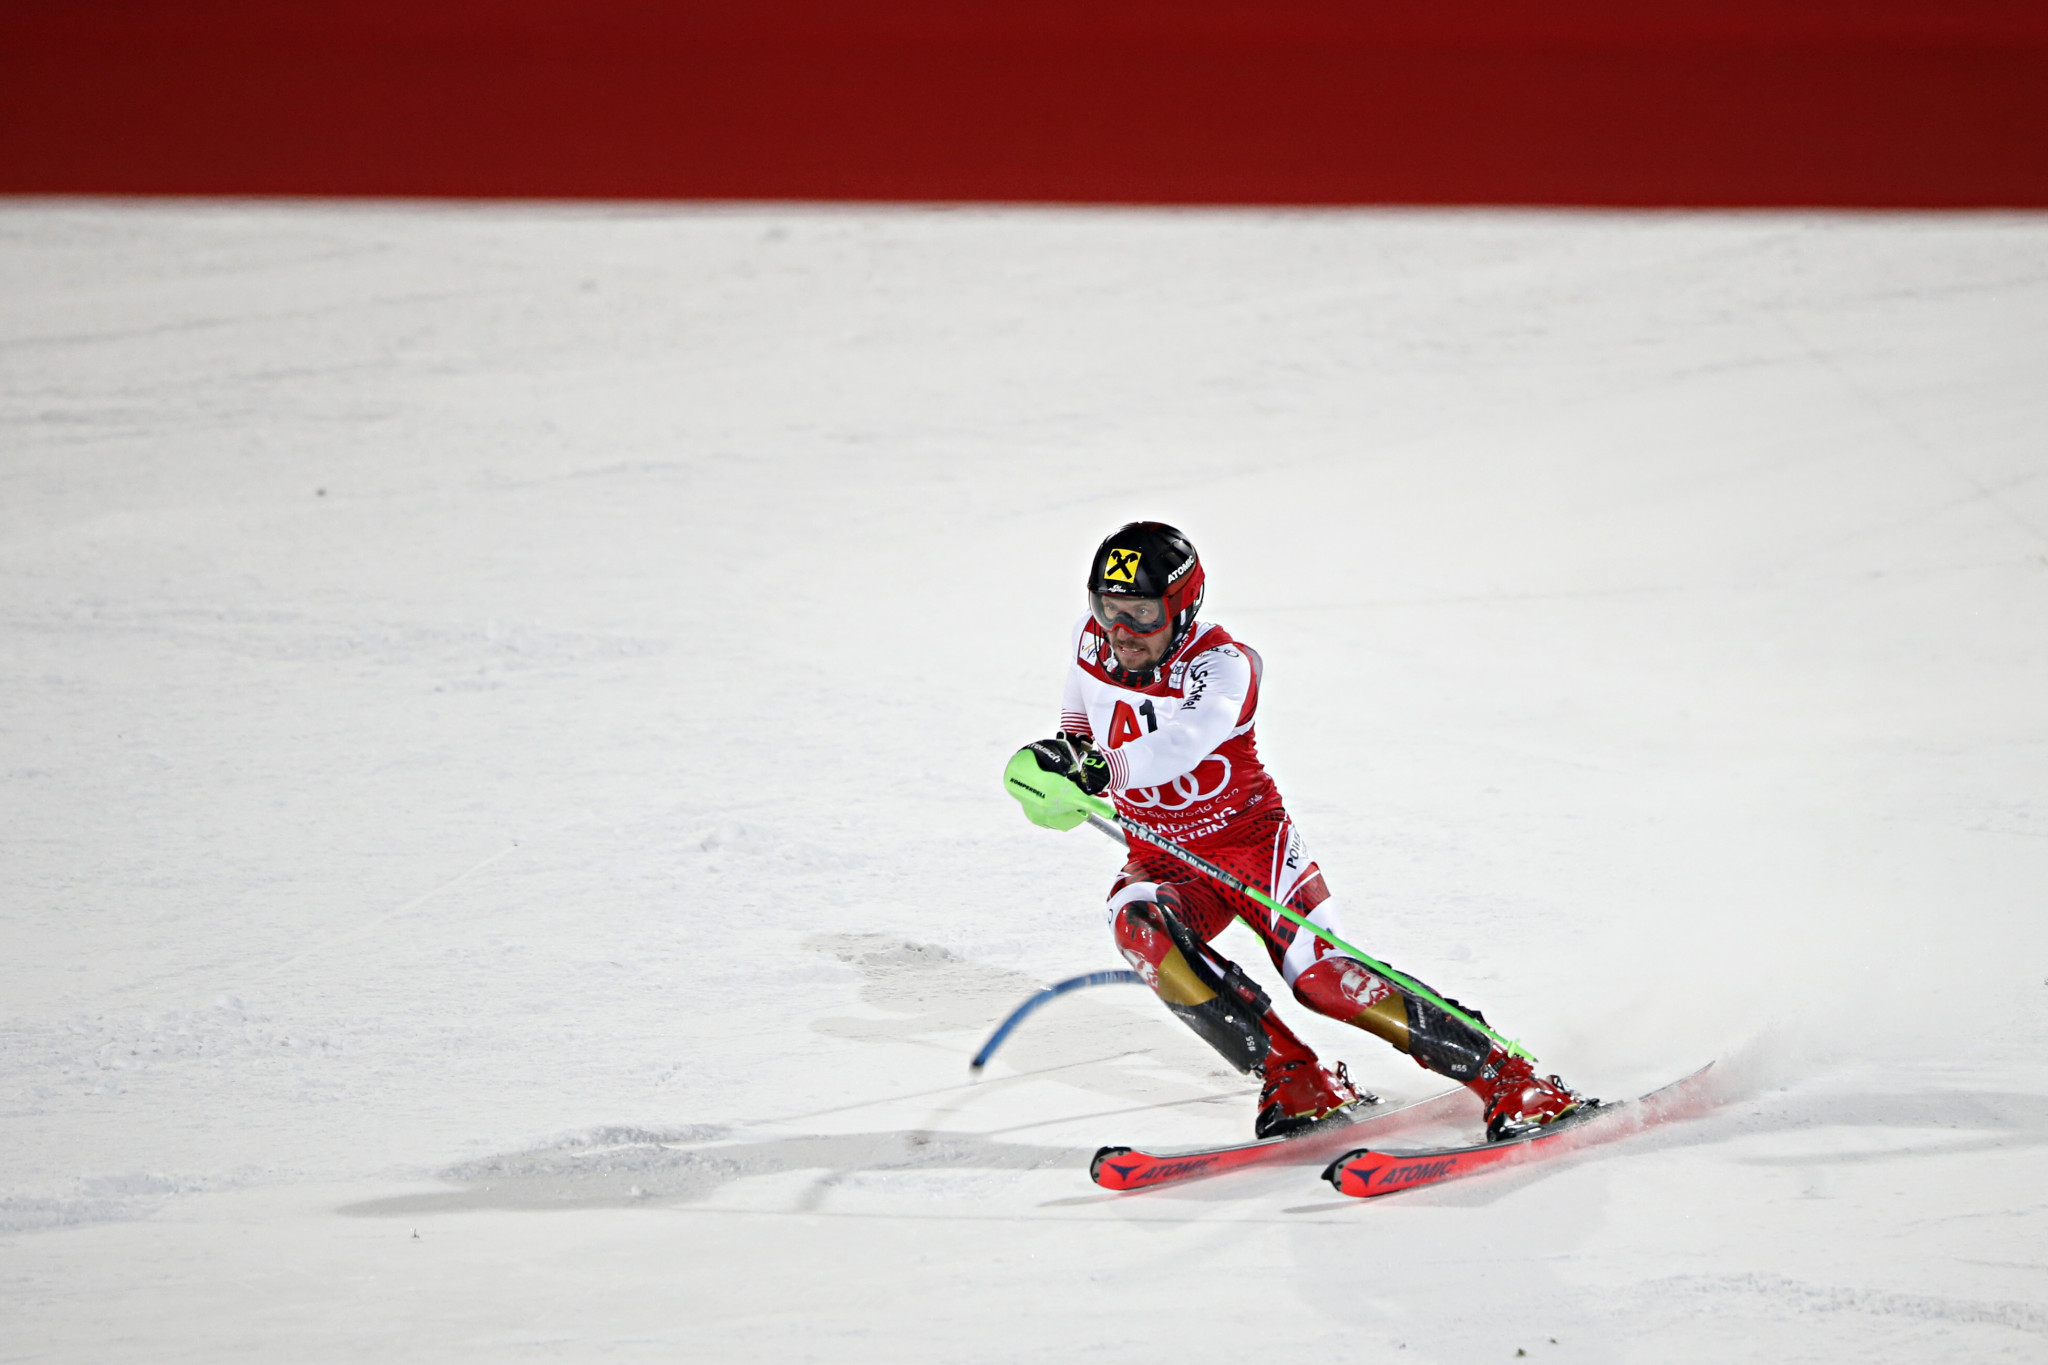 Hirscher records dominant Alpine Skiing World Cup victory at Schladming night slalom